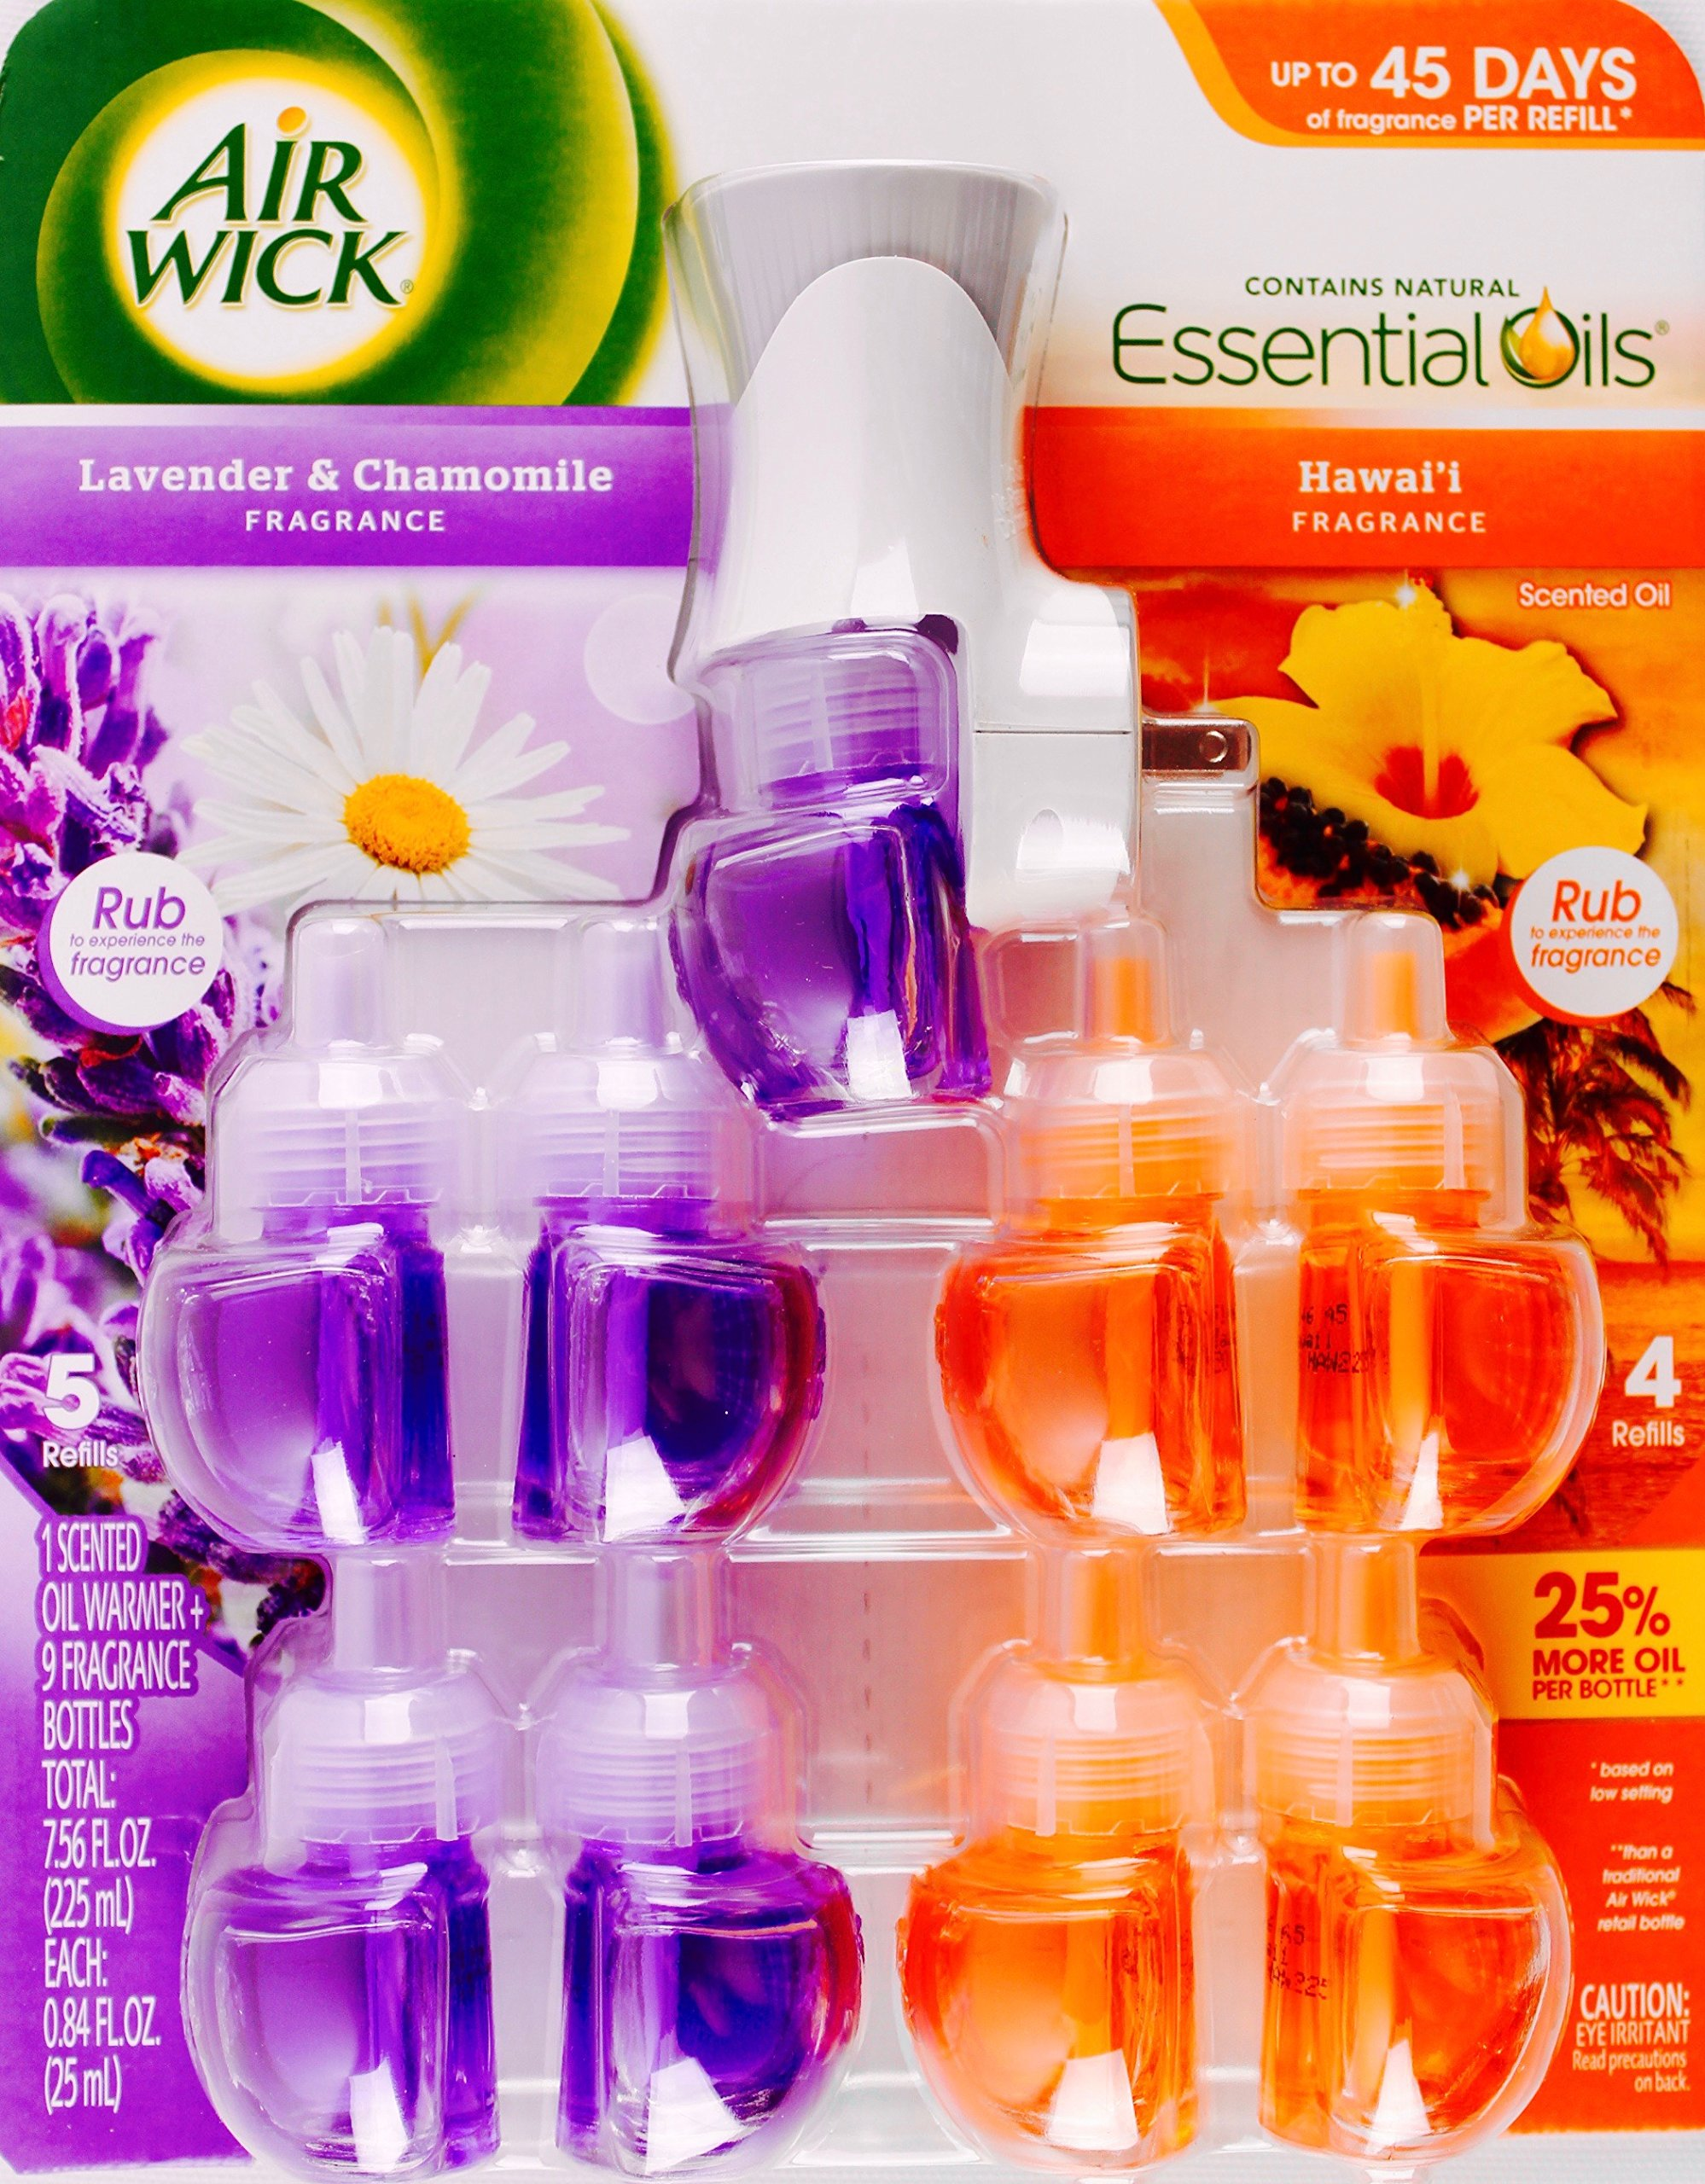 Air Wick Essential Oils 1 Warmer + 9 Bottles, Lavender Chamomile & Hawaii Scent